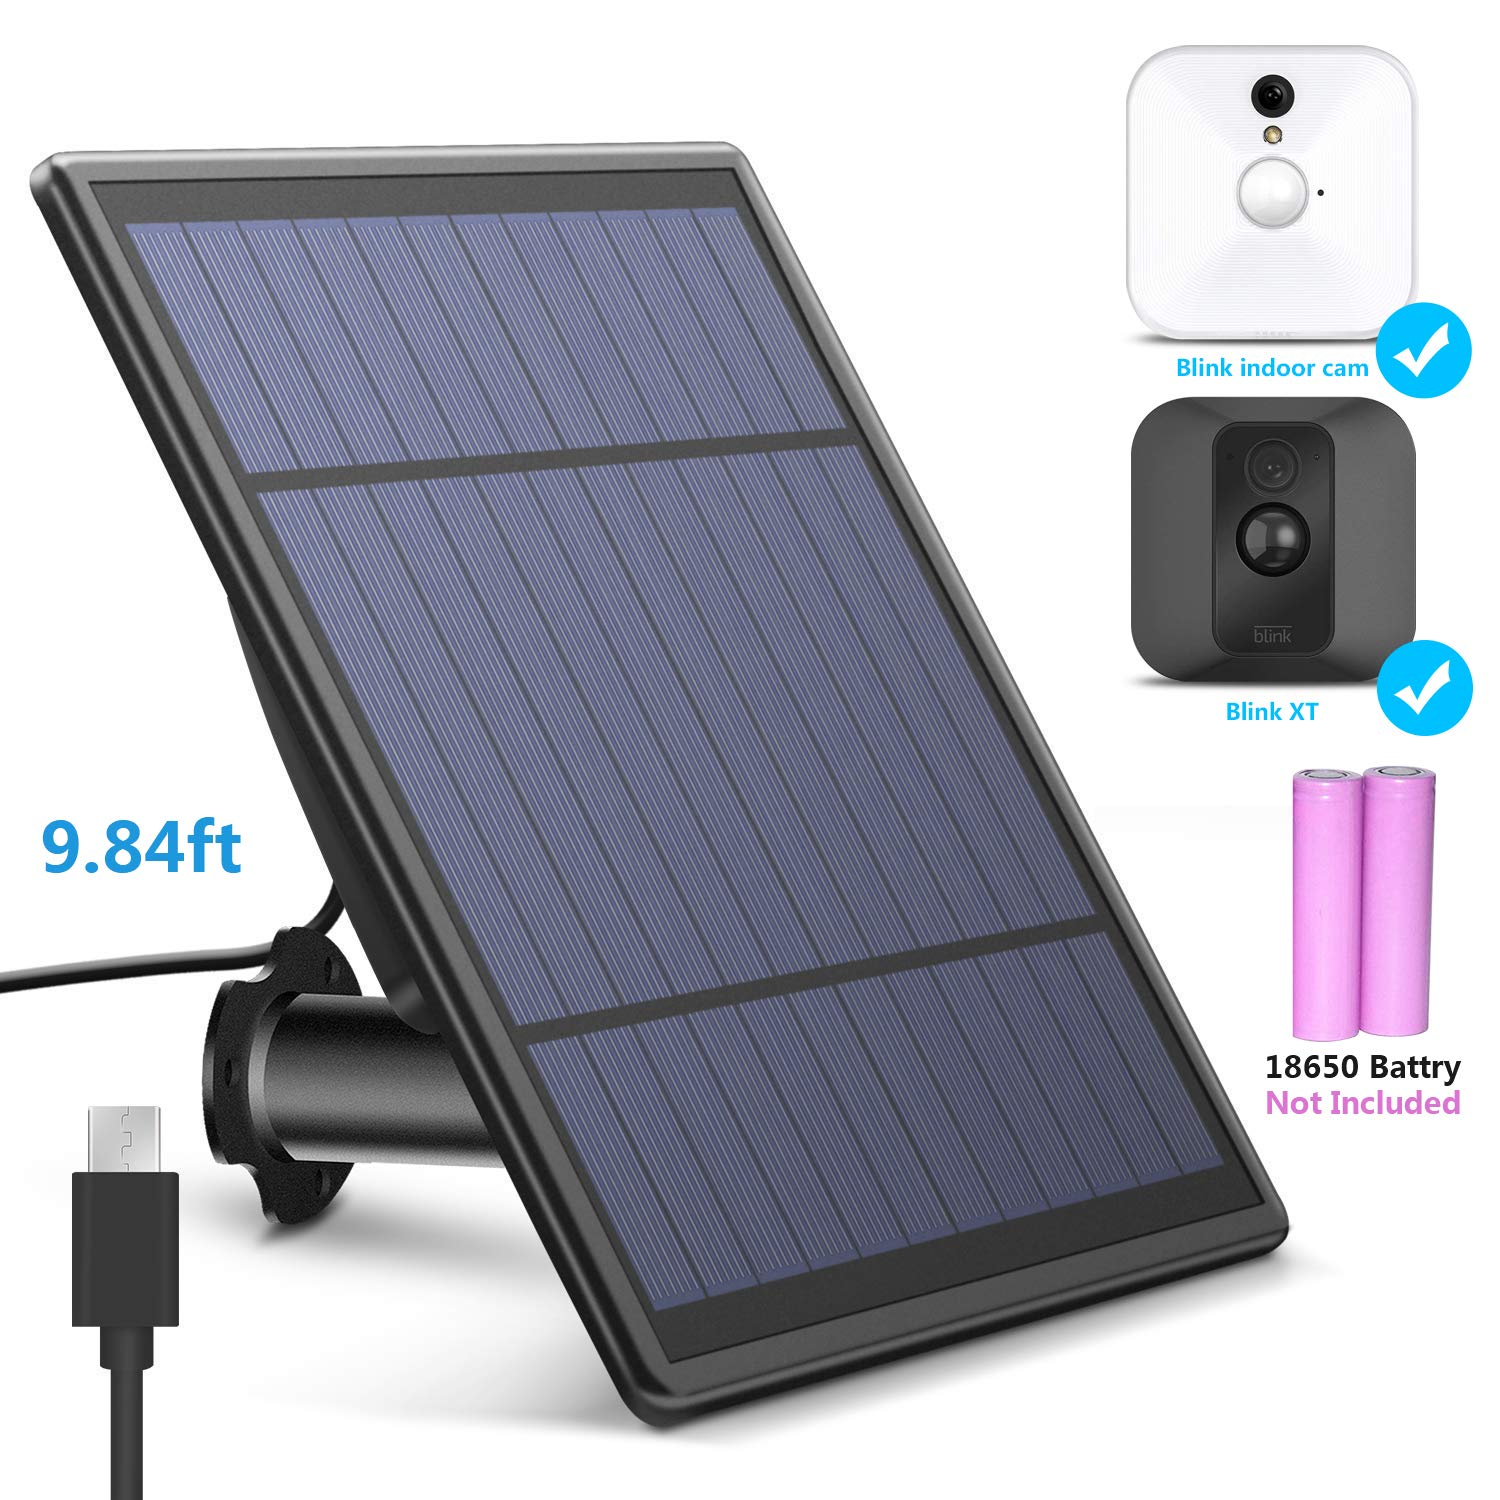 Solar Panel for Blink and Blink XT XT2 Home Security Camera (Camera not Included), 3 m/ 10 ft Power Cable, Battery and Solar Charger